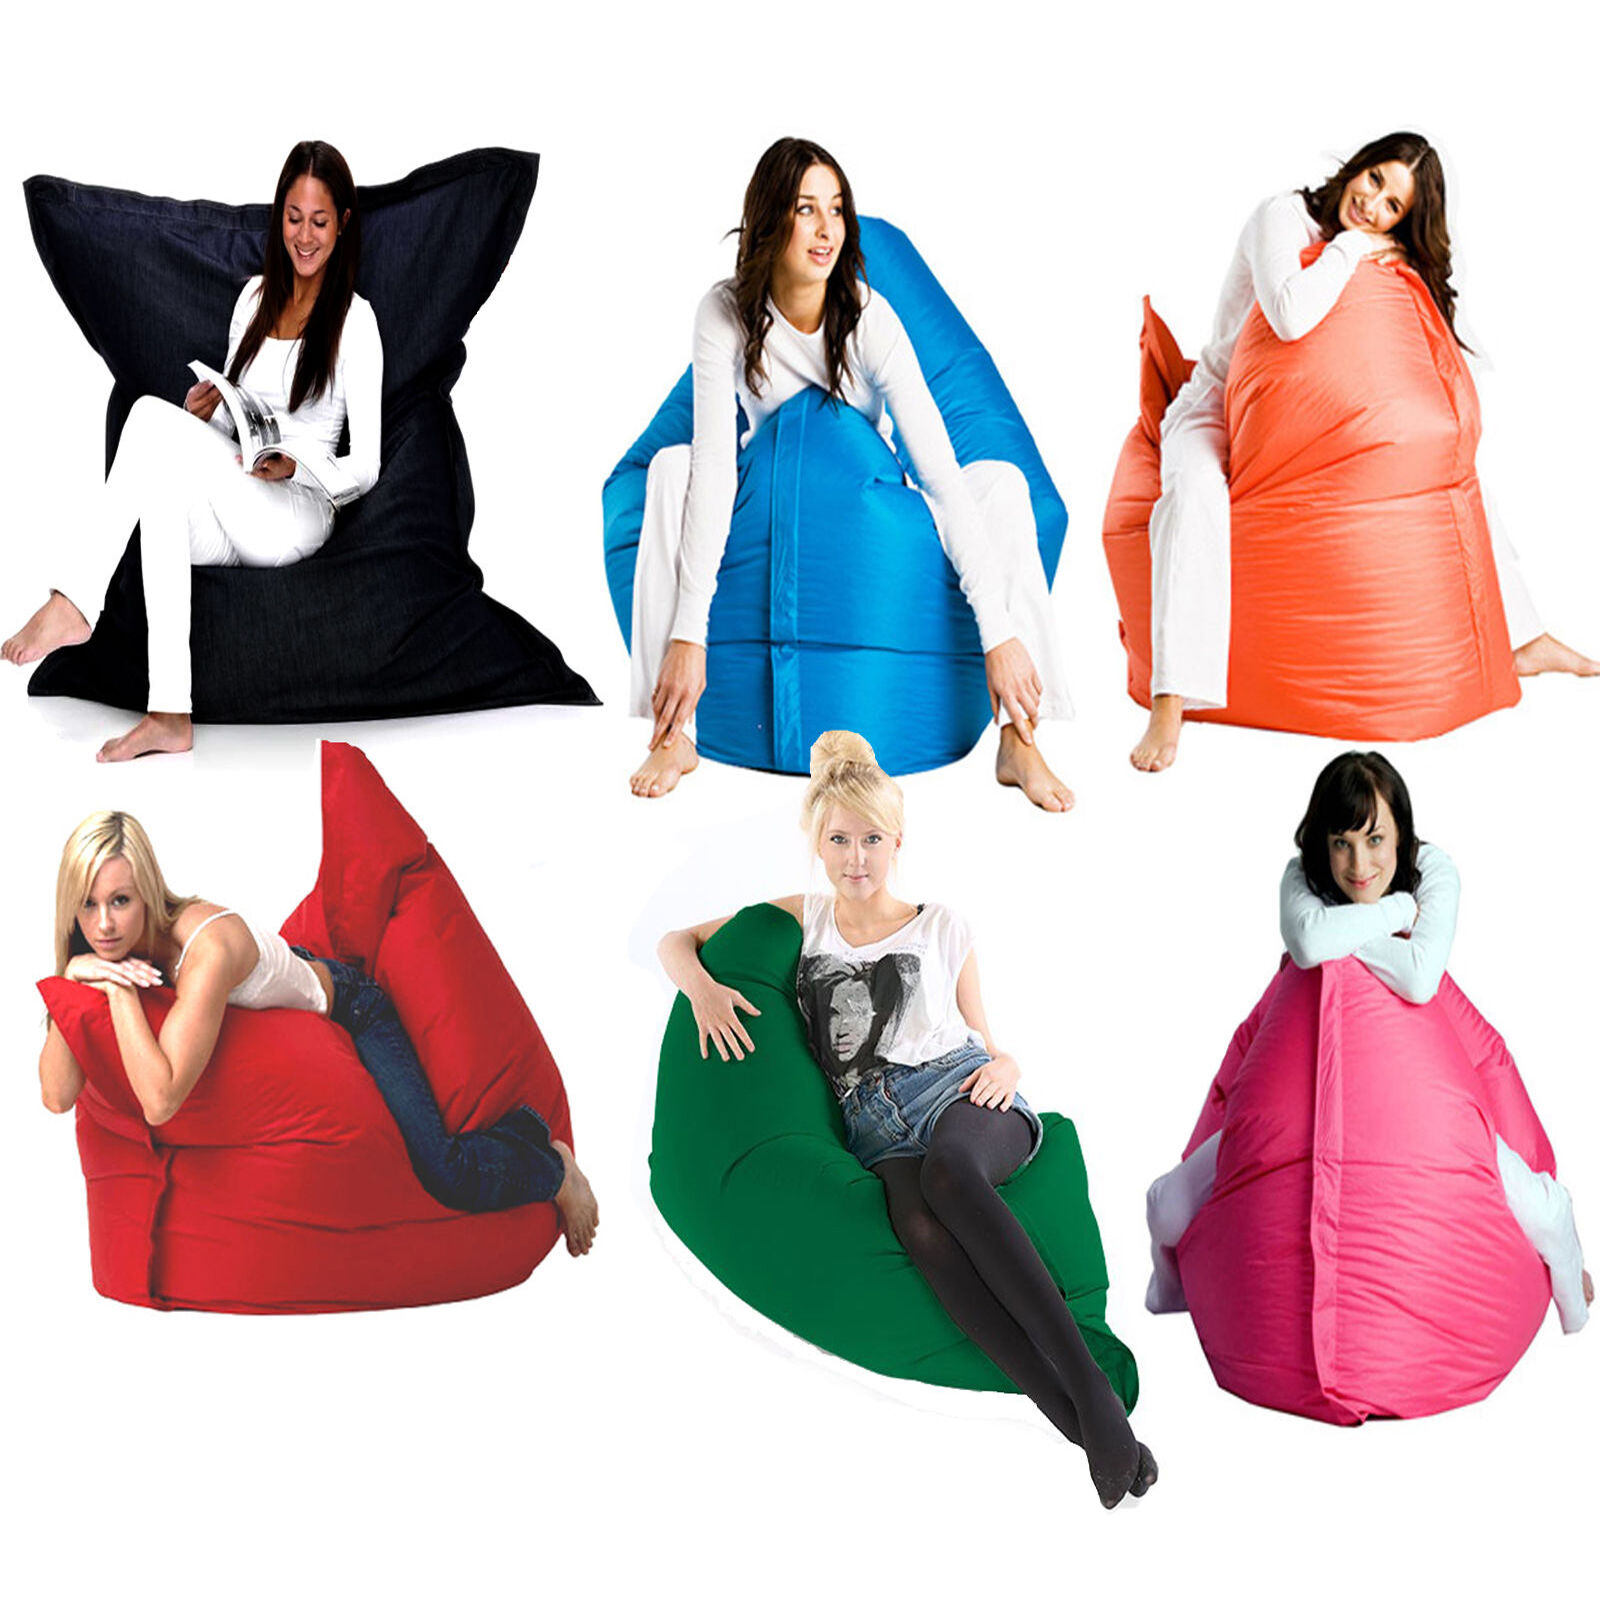 Giant Xxl Bean Bags Large Floor Cushion Lounger Indoor